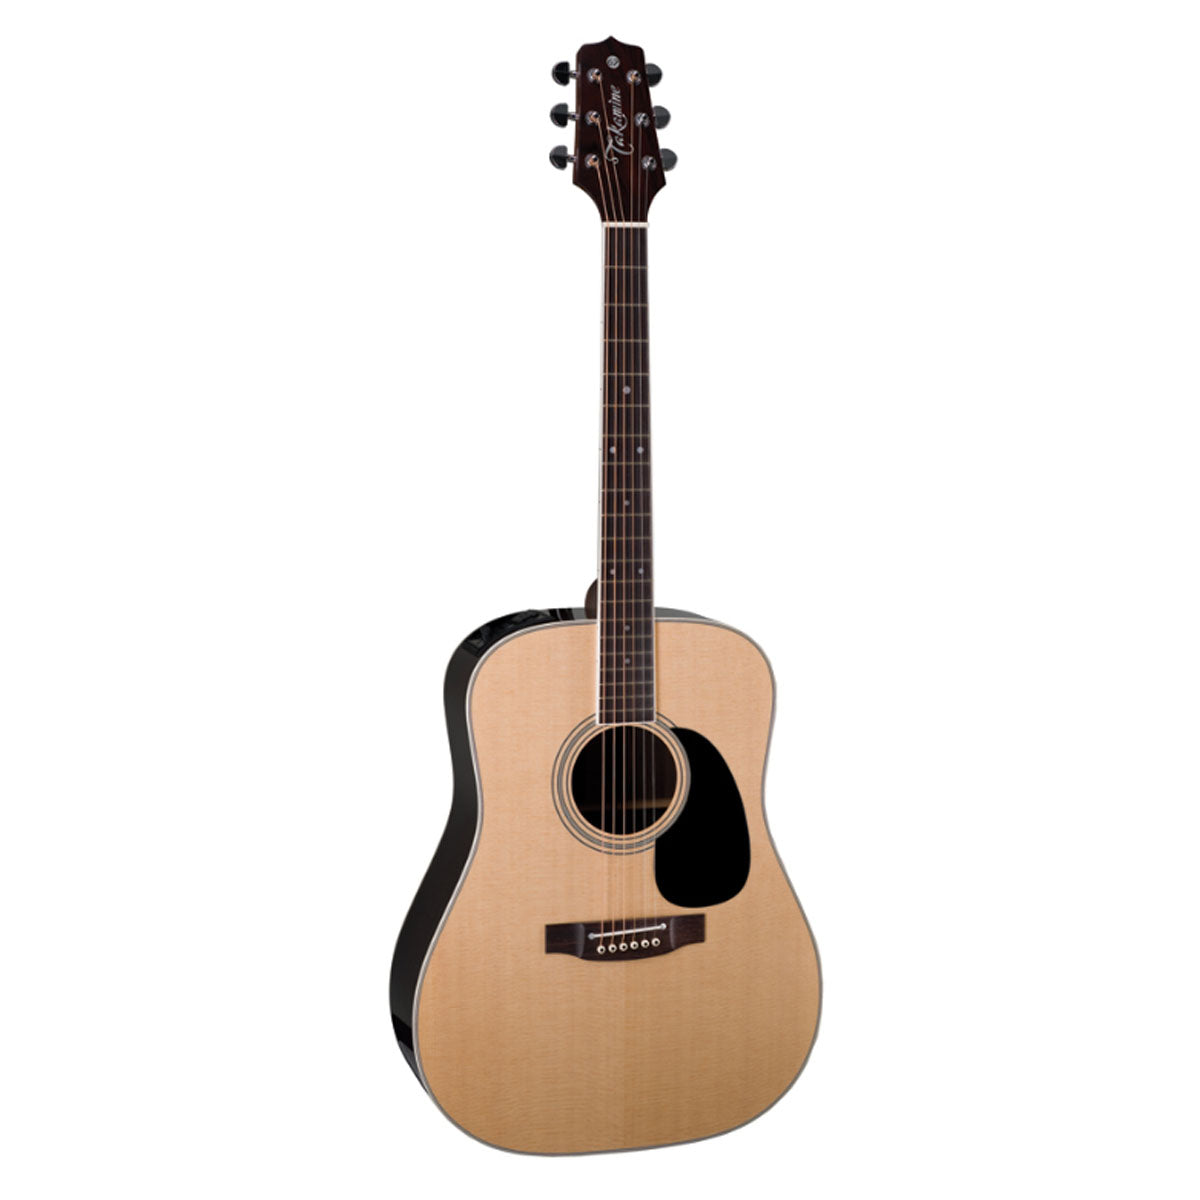 Takamine EF360GF Glenn Frey Signature Acoustic Guitar Dreadnought Natural w/ Pickup